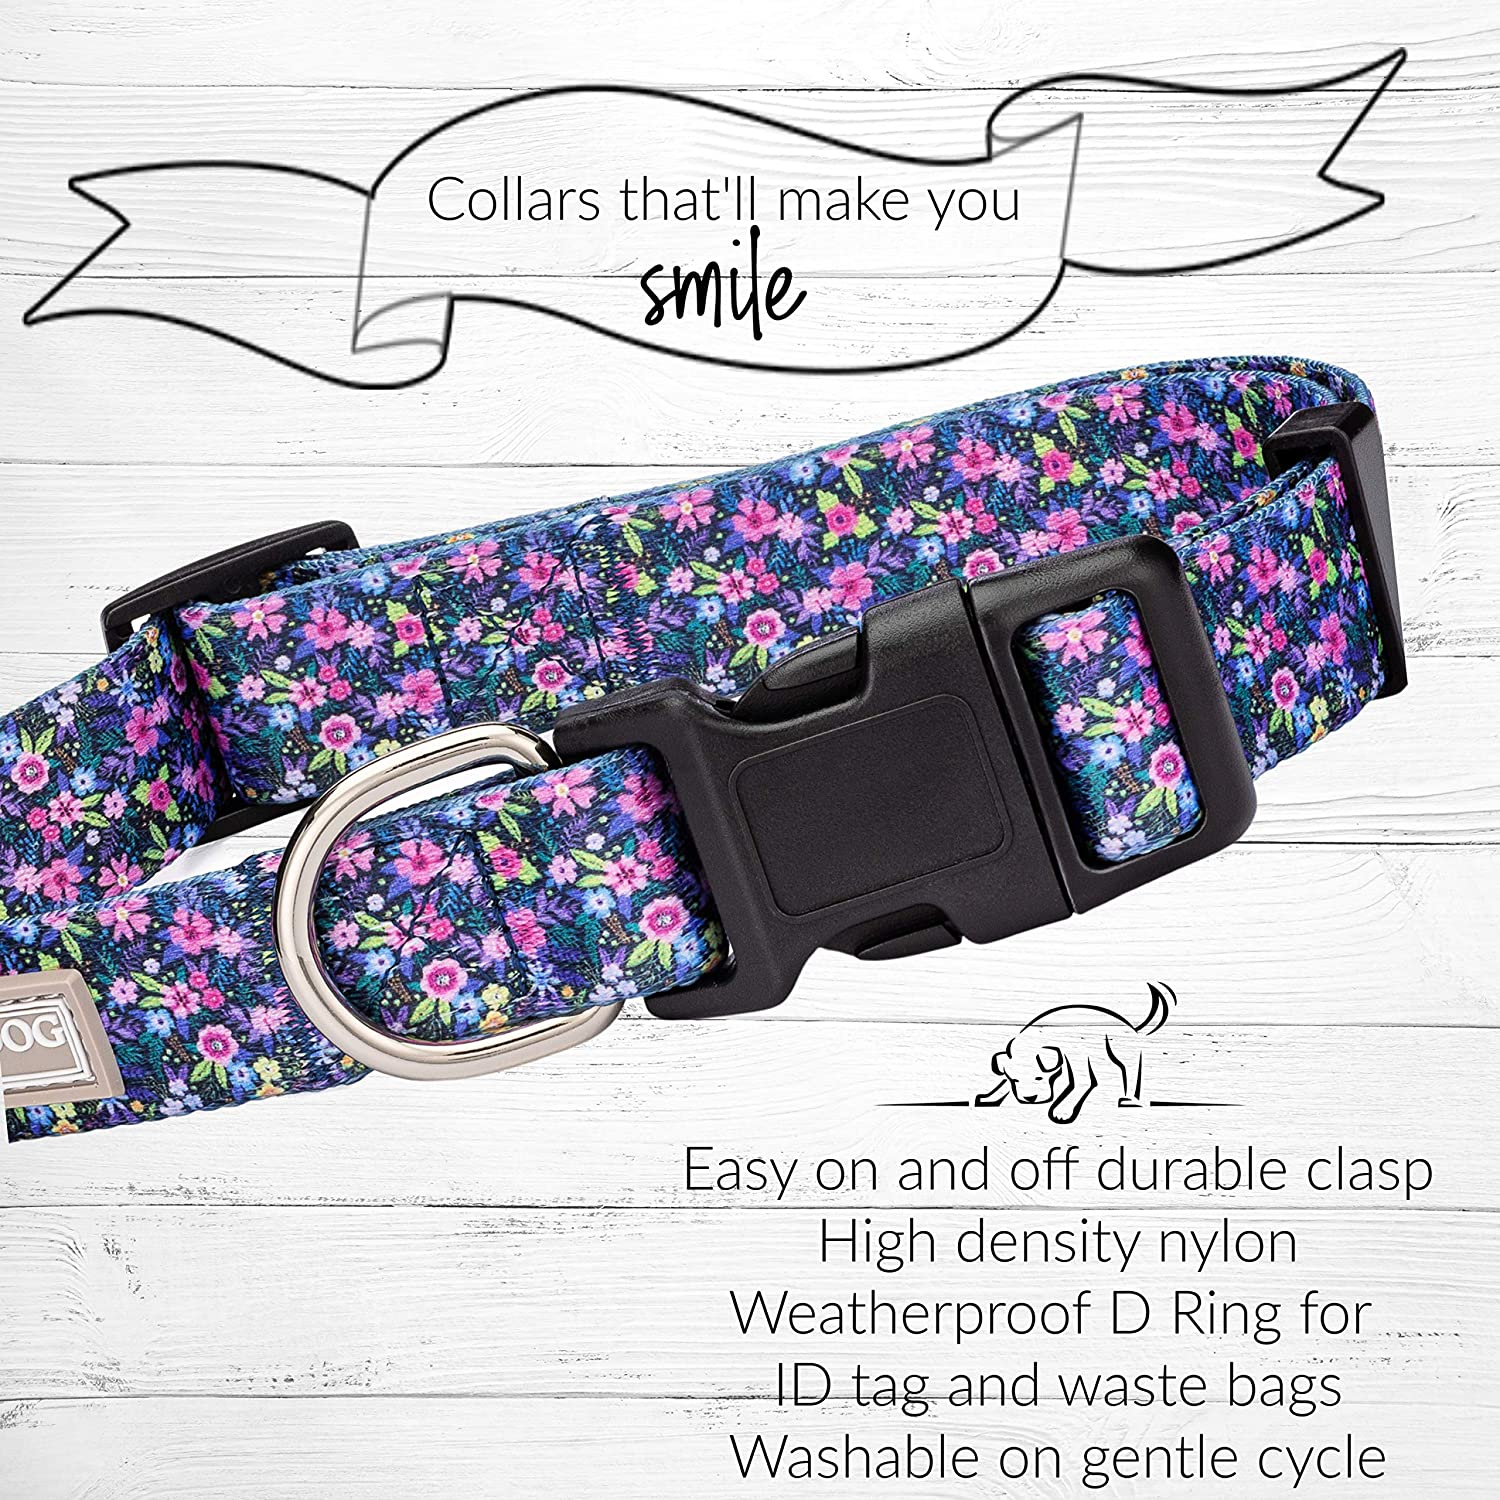 Premium Large, Martingale Ladybird Medium Floral Collars for Girl Dogs Large |Matching Collar Leash Set Lucky Love Dog Cute Female Dog Collars Small